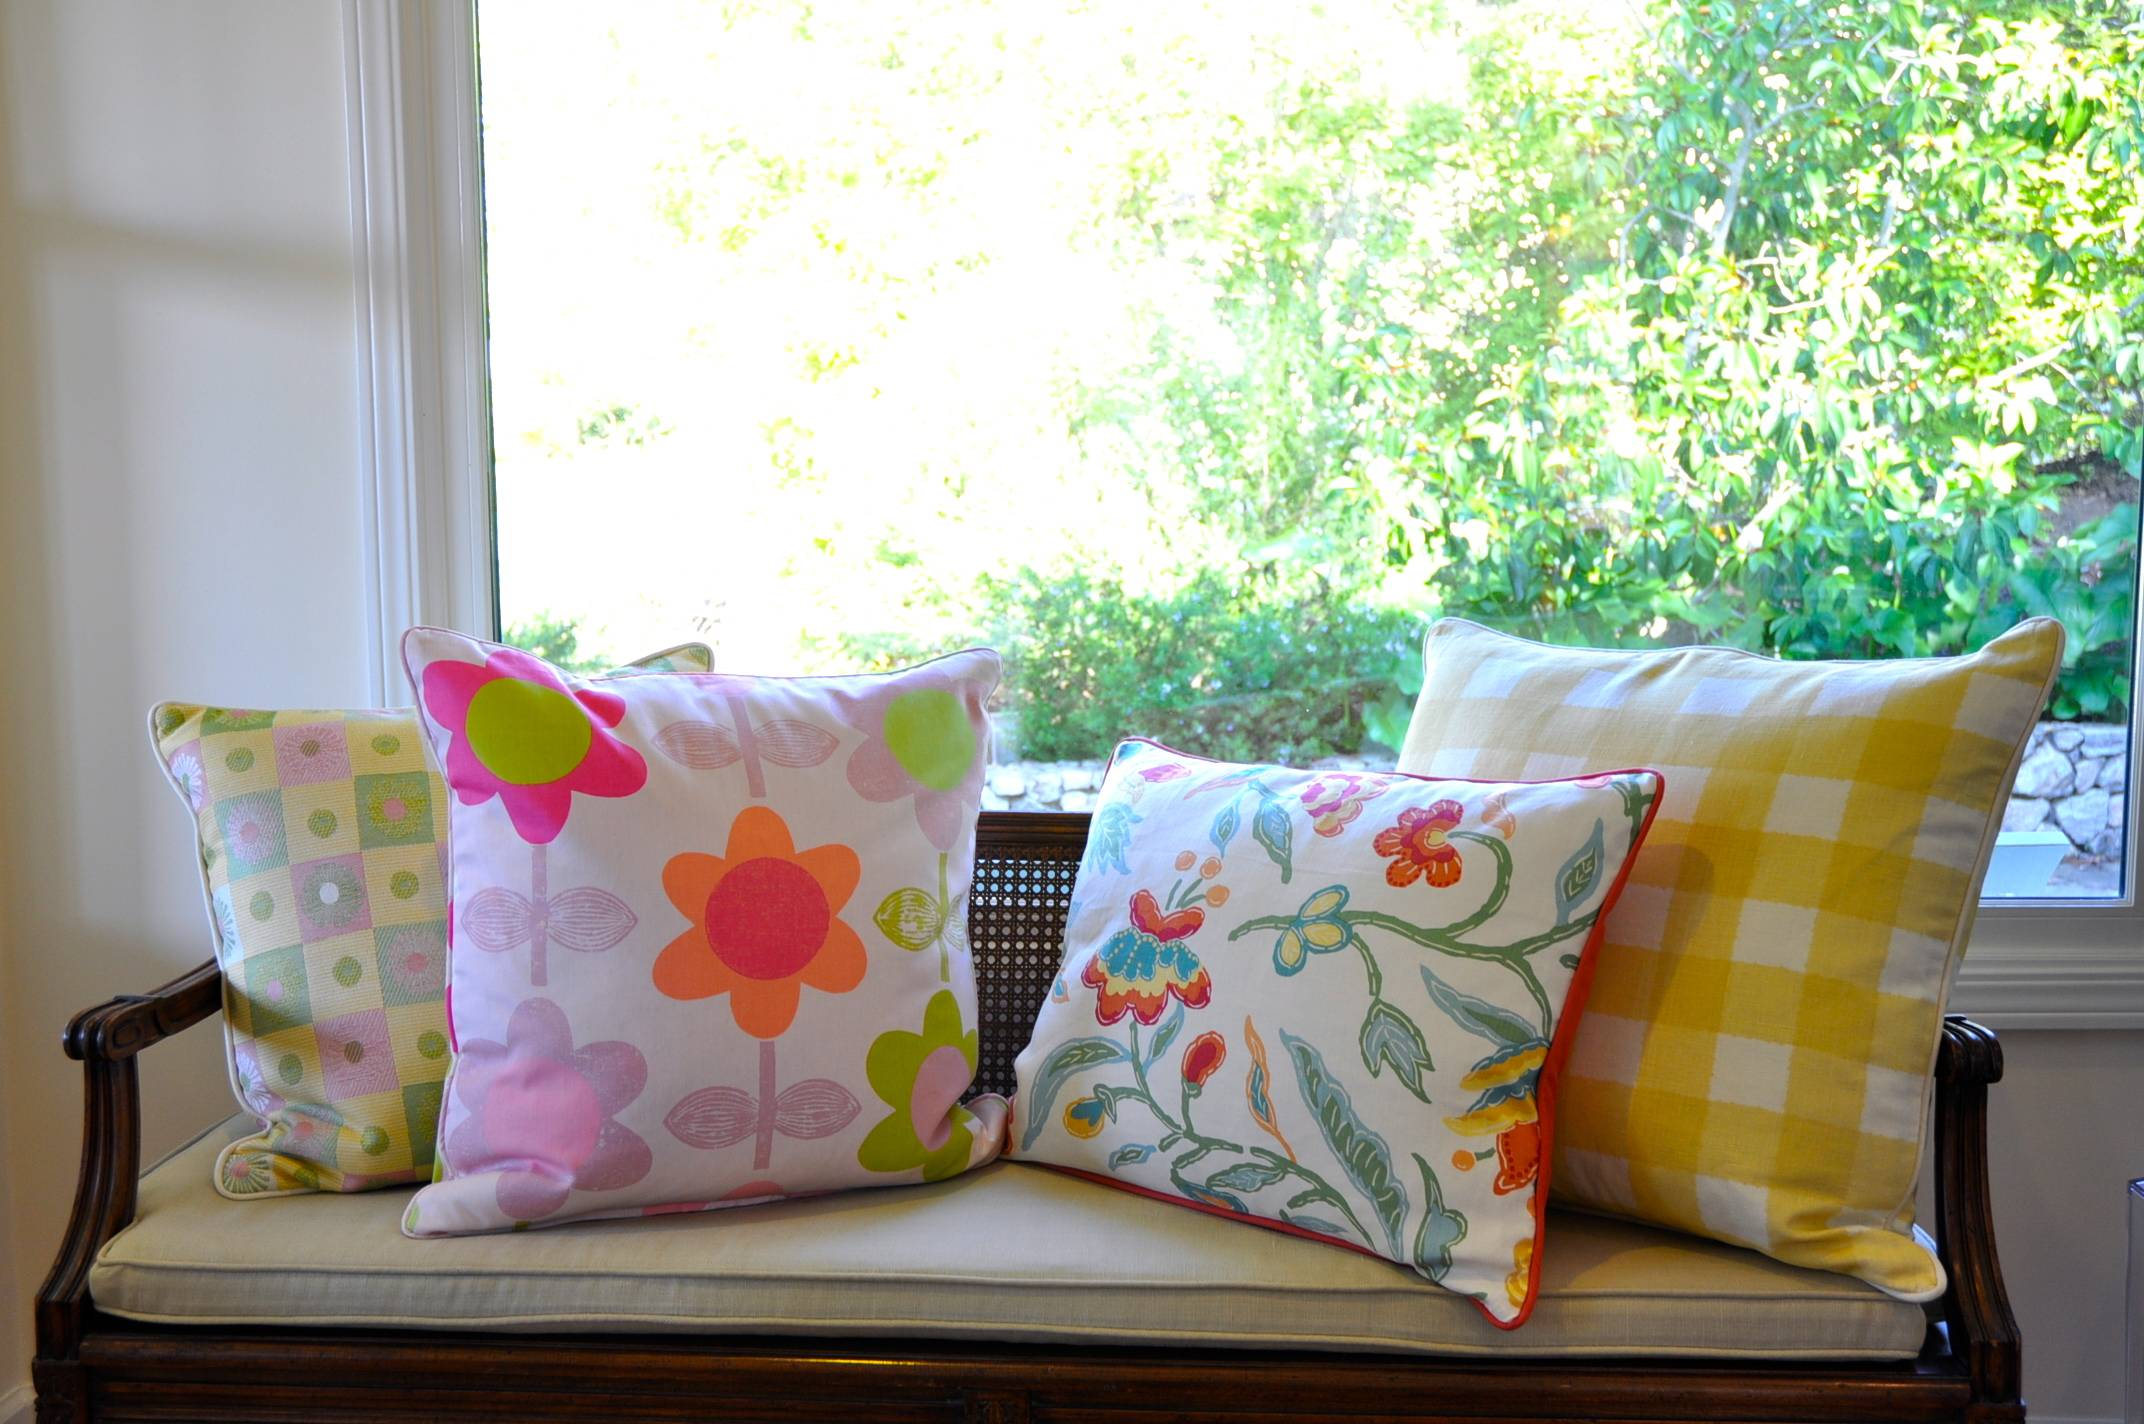 Haute Décor: Marin County Interior Design Company Talks Pillows